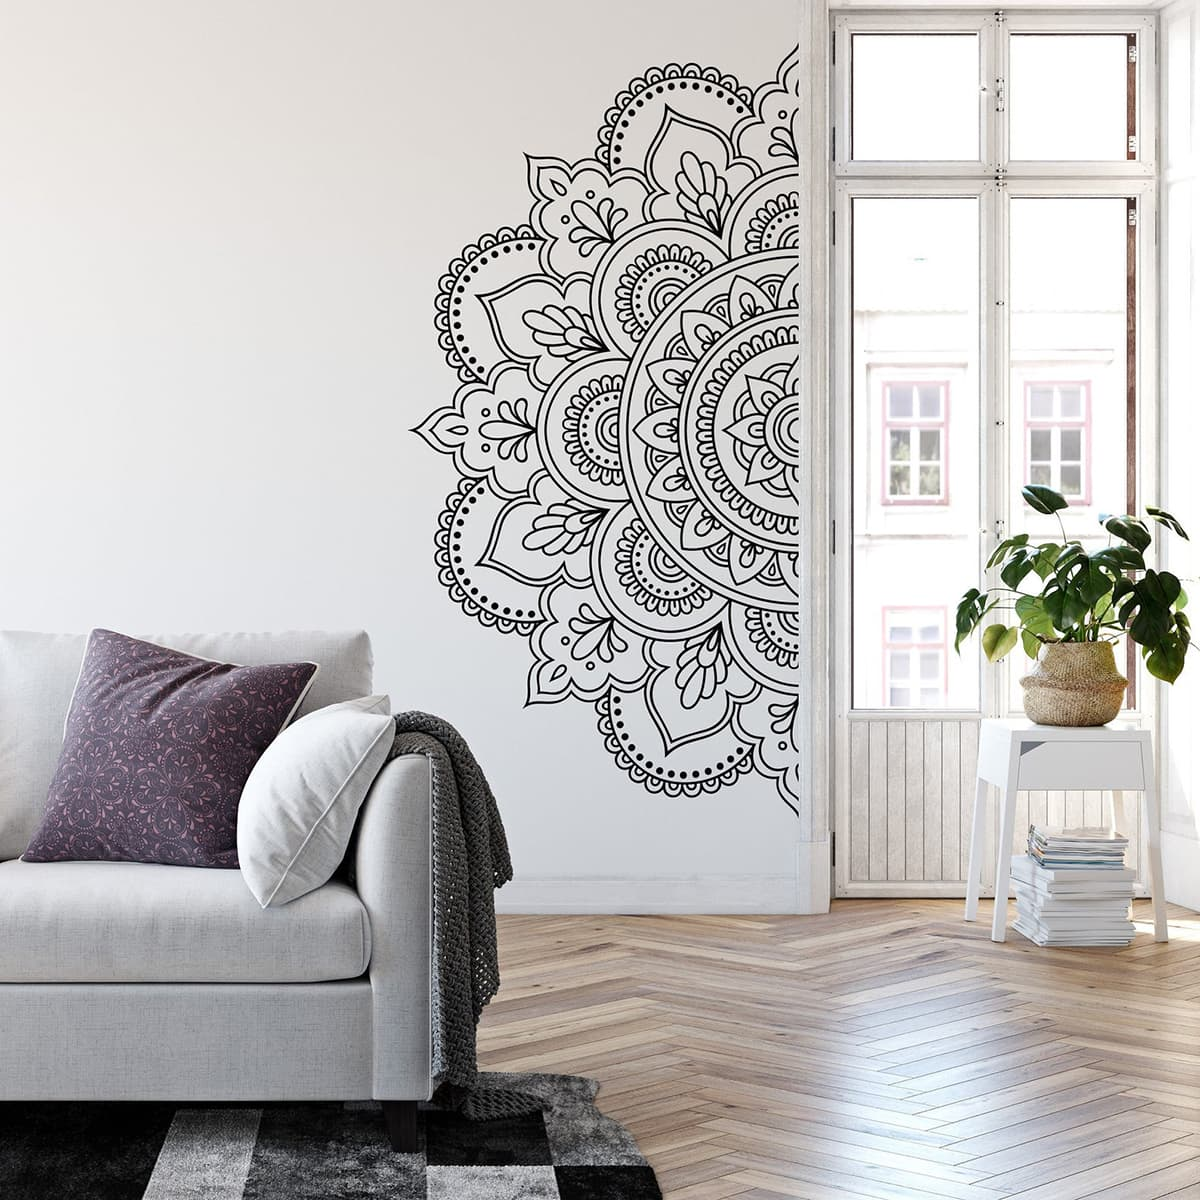 mandala wall mural or decal